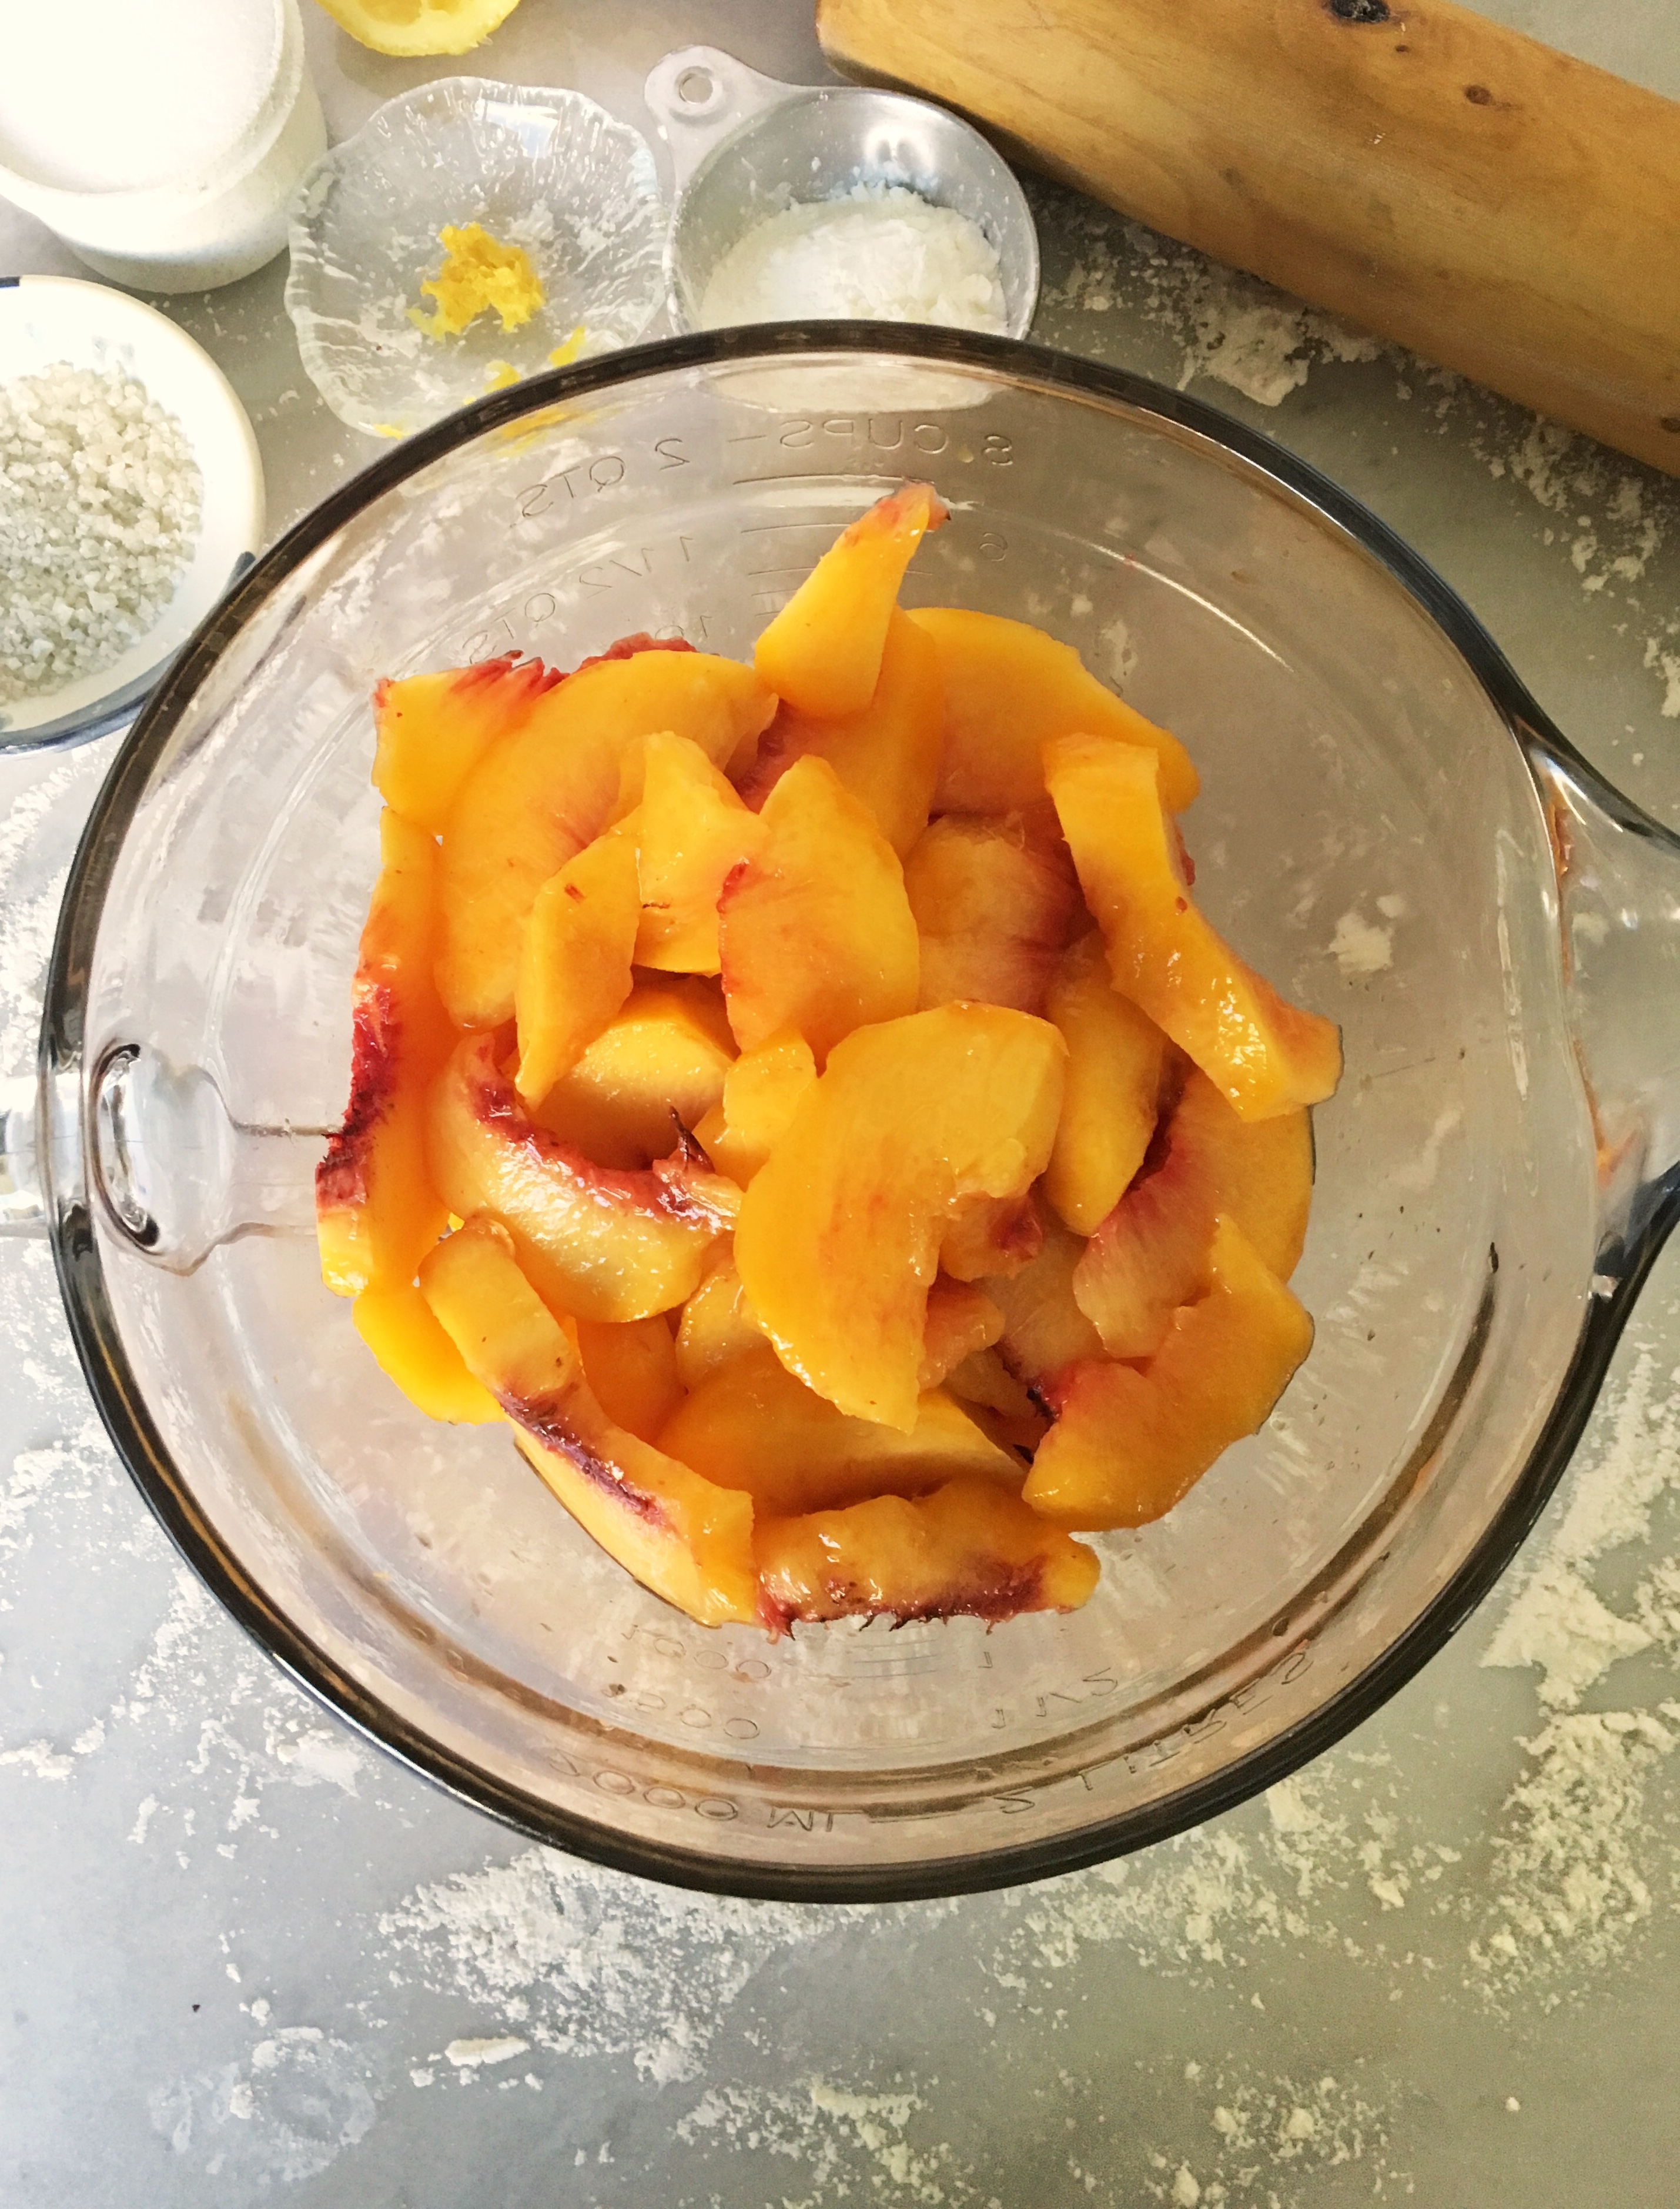 bowl of fresh peaches and other ingredients